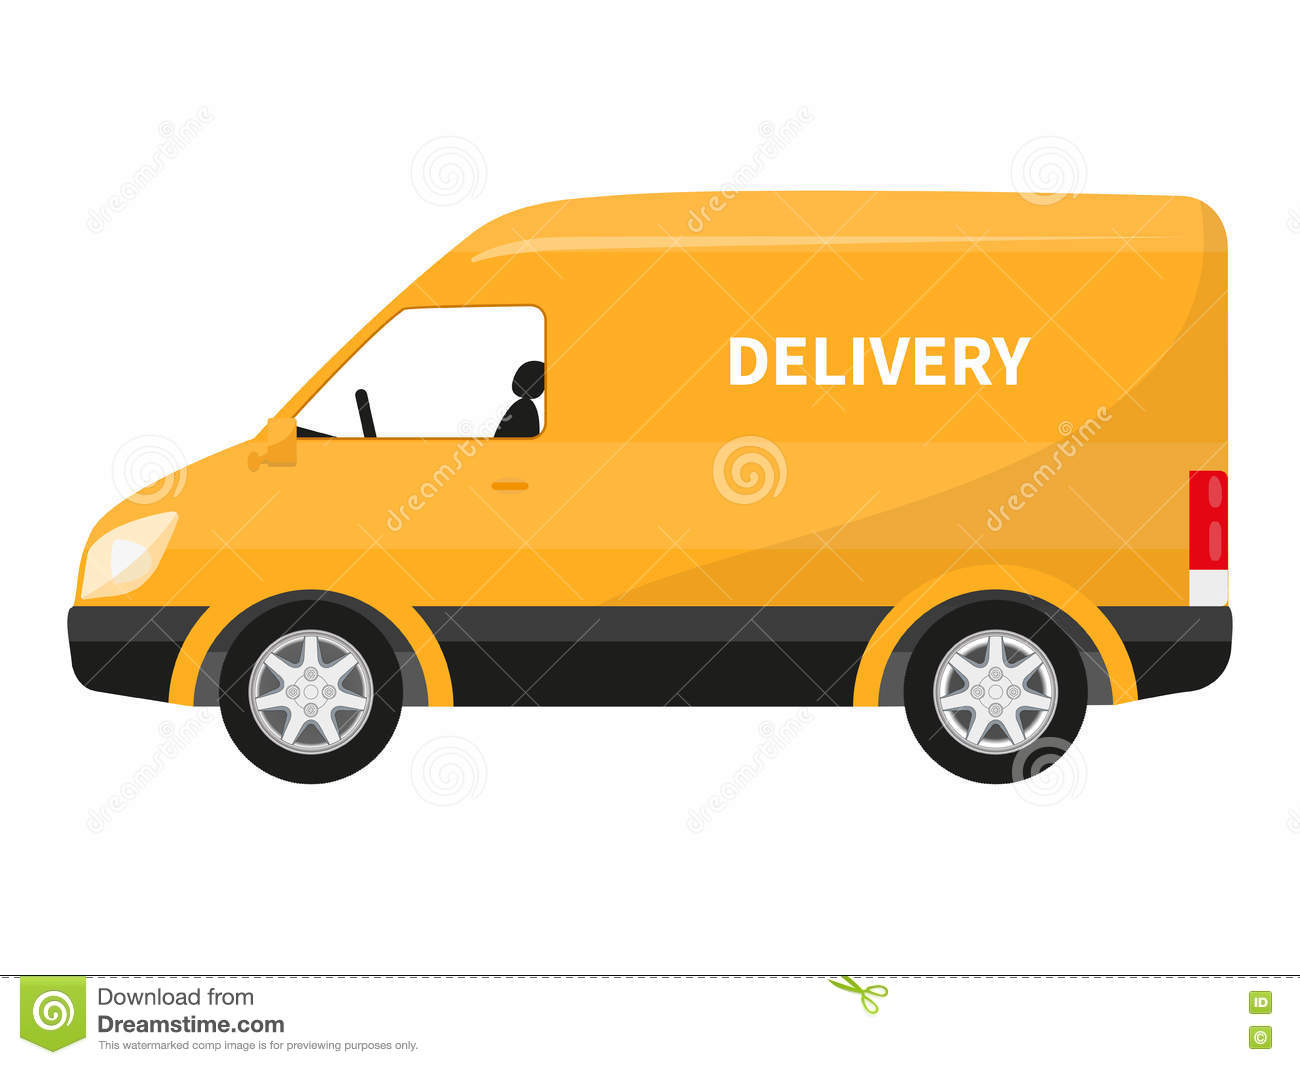 delivery truck icon vector - photo #31